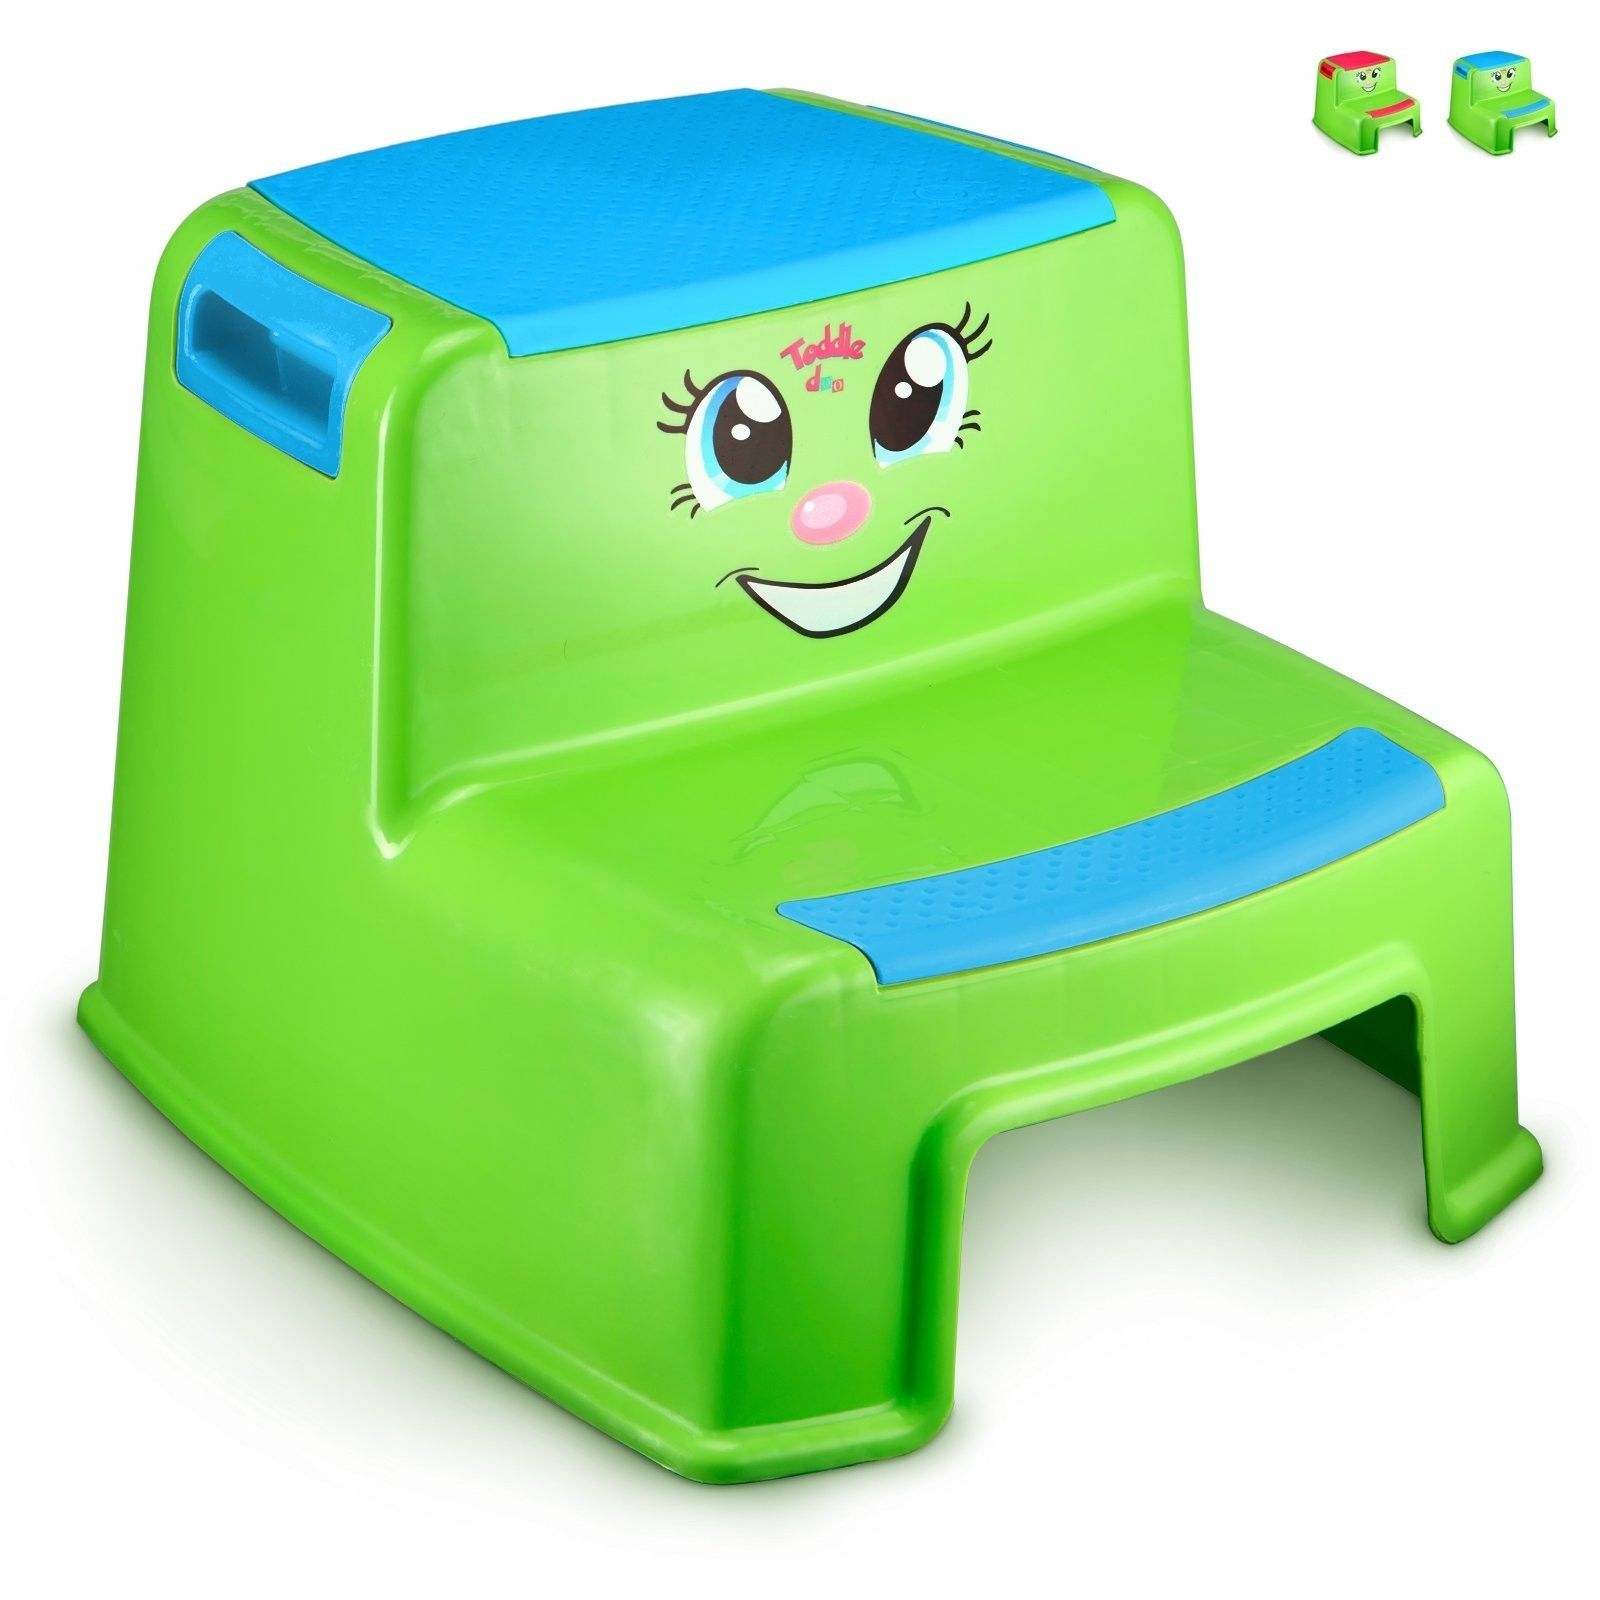 Awe Inspiring Step Stools For Kids Toddlers Potty Step Stool For Toilet Bralicious Painted Fabric Chair Ideas Braliciousco